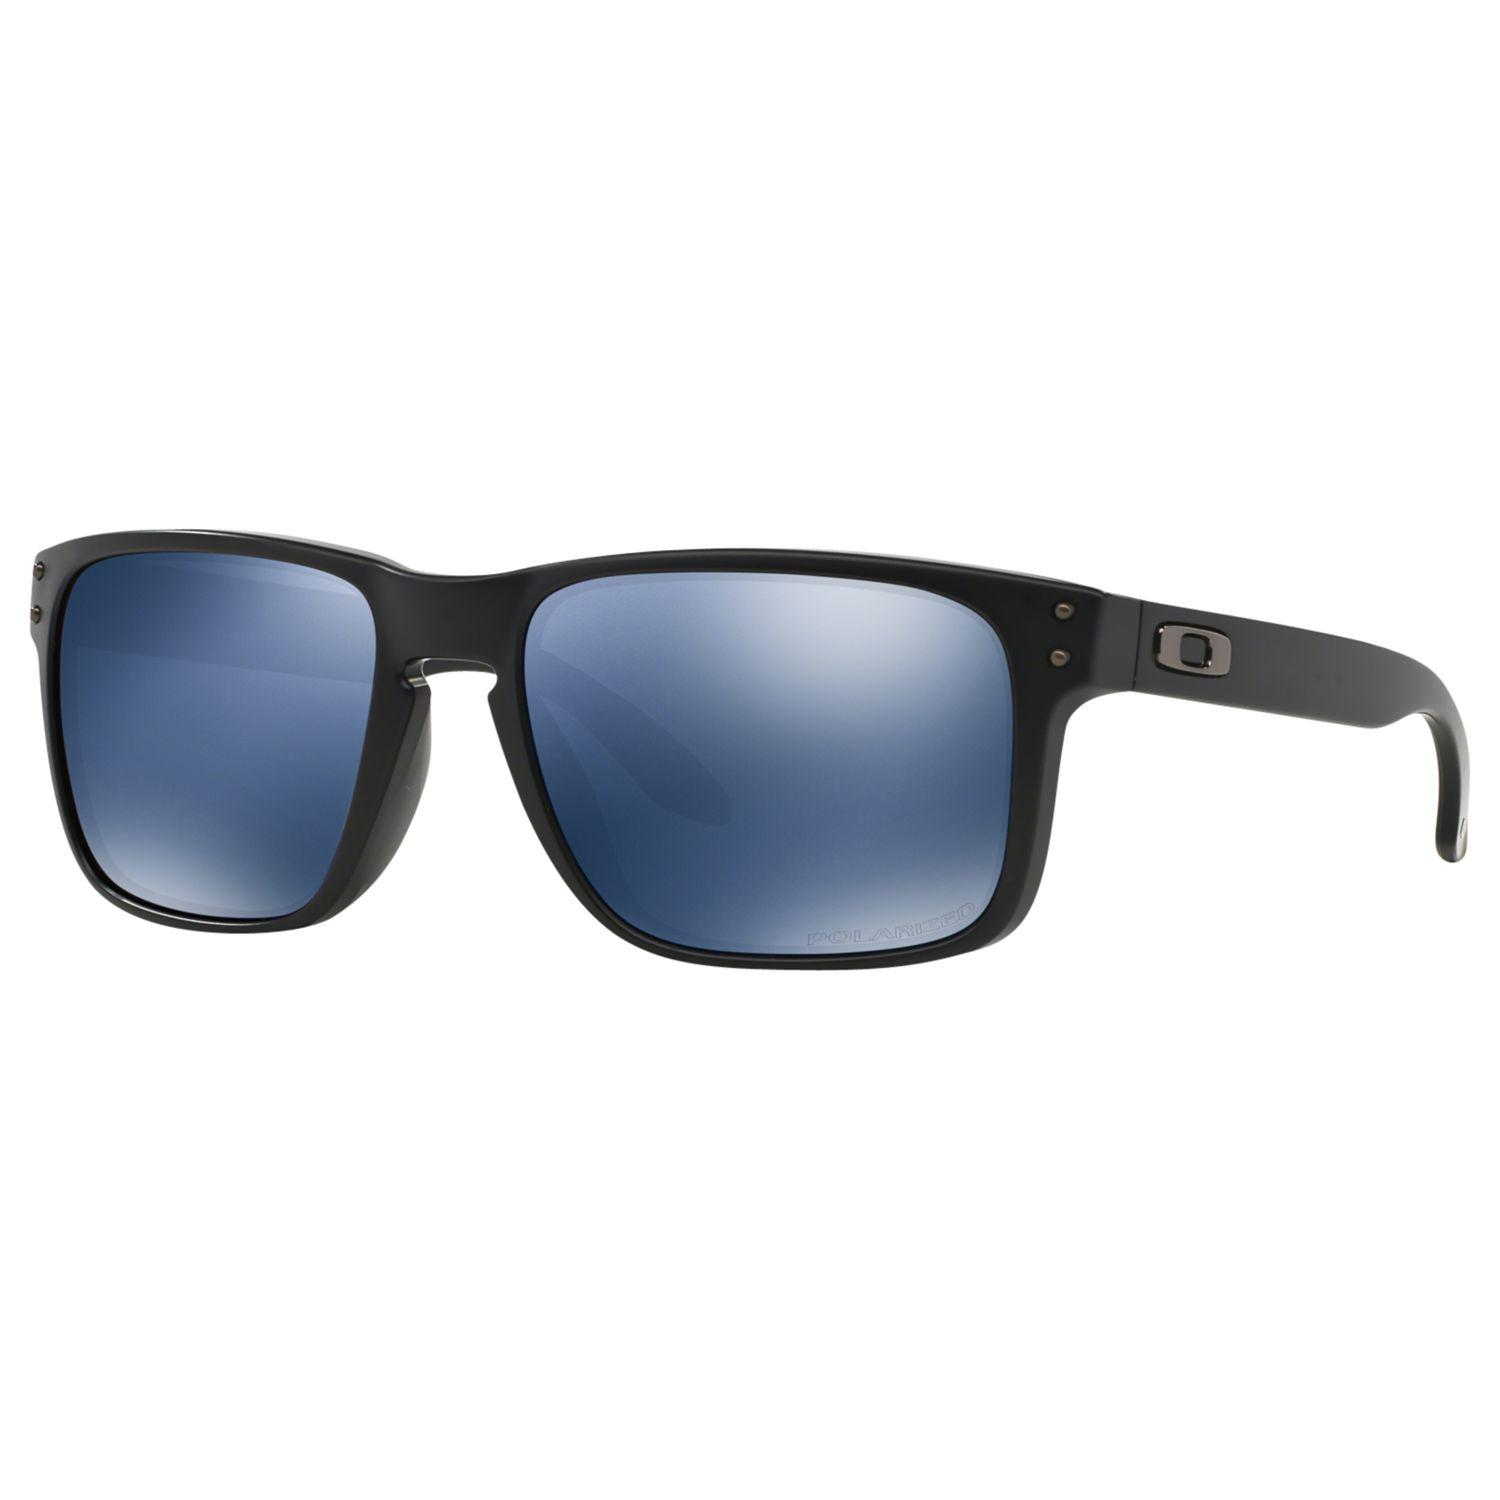 7e0e05ba3fd85 Oakley. Men s Oo9102 Holbrook Polarised Sunglasses. £155 From John Lewis  and Partners